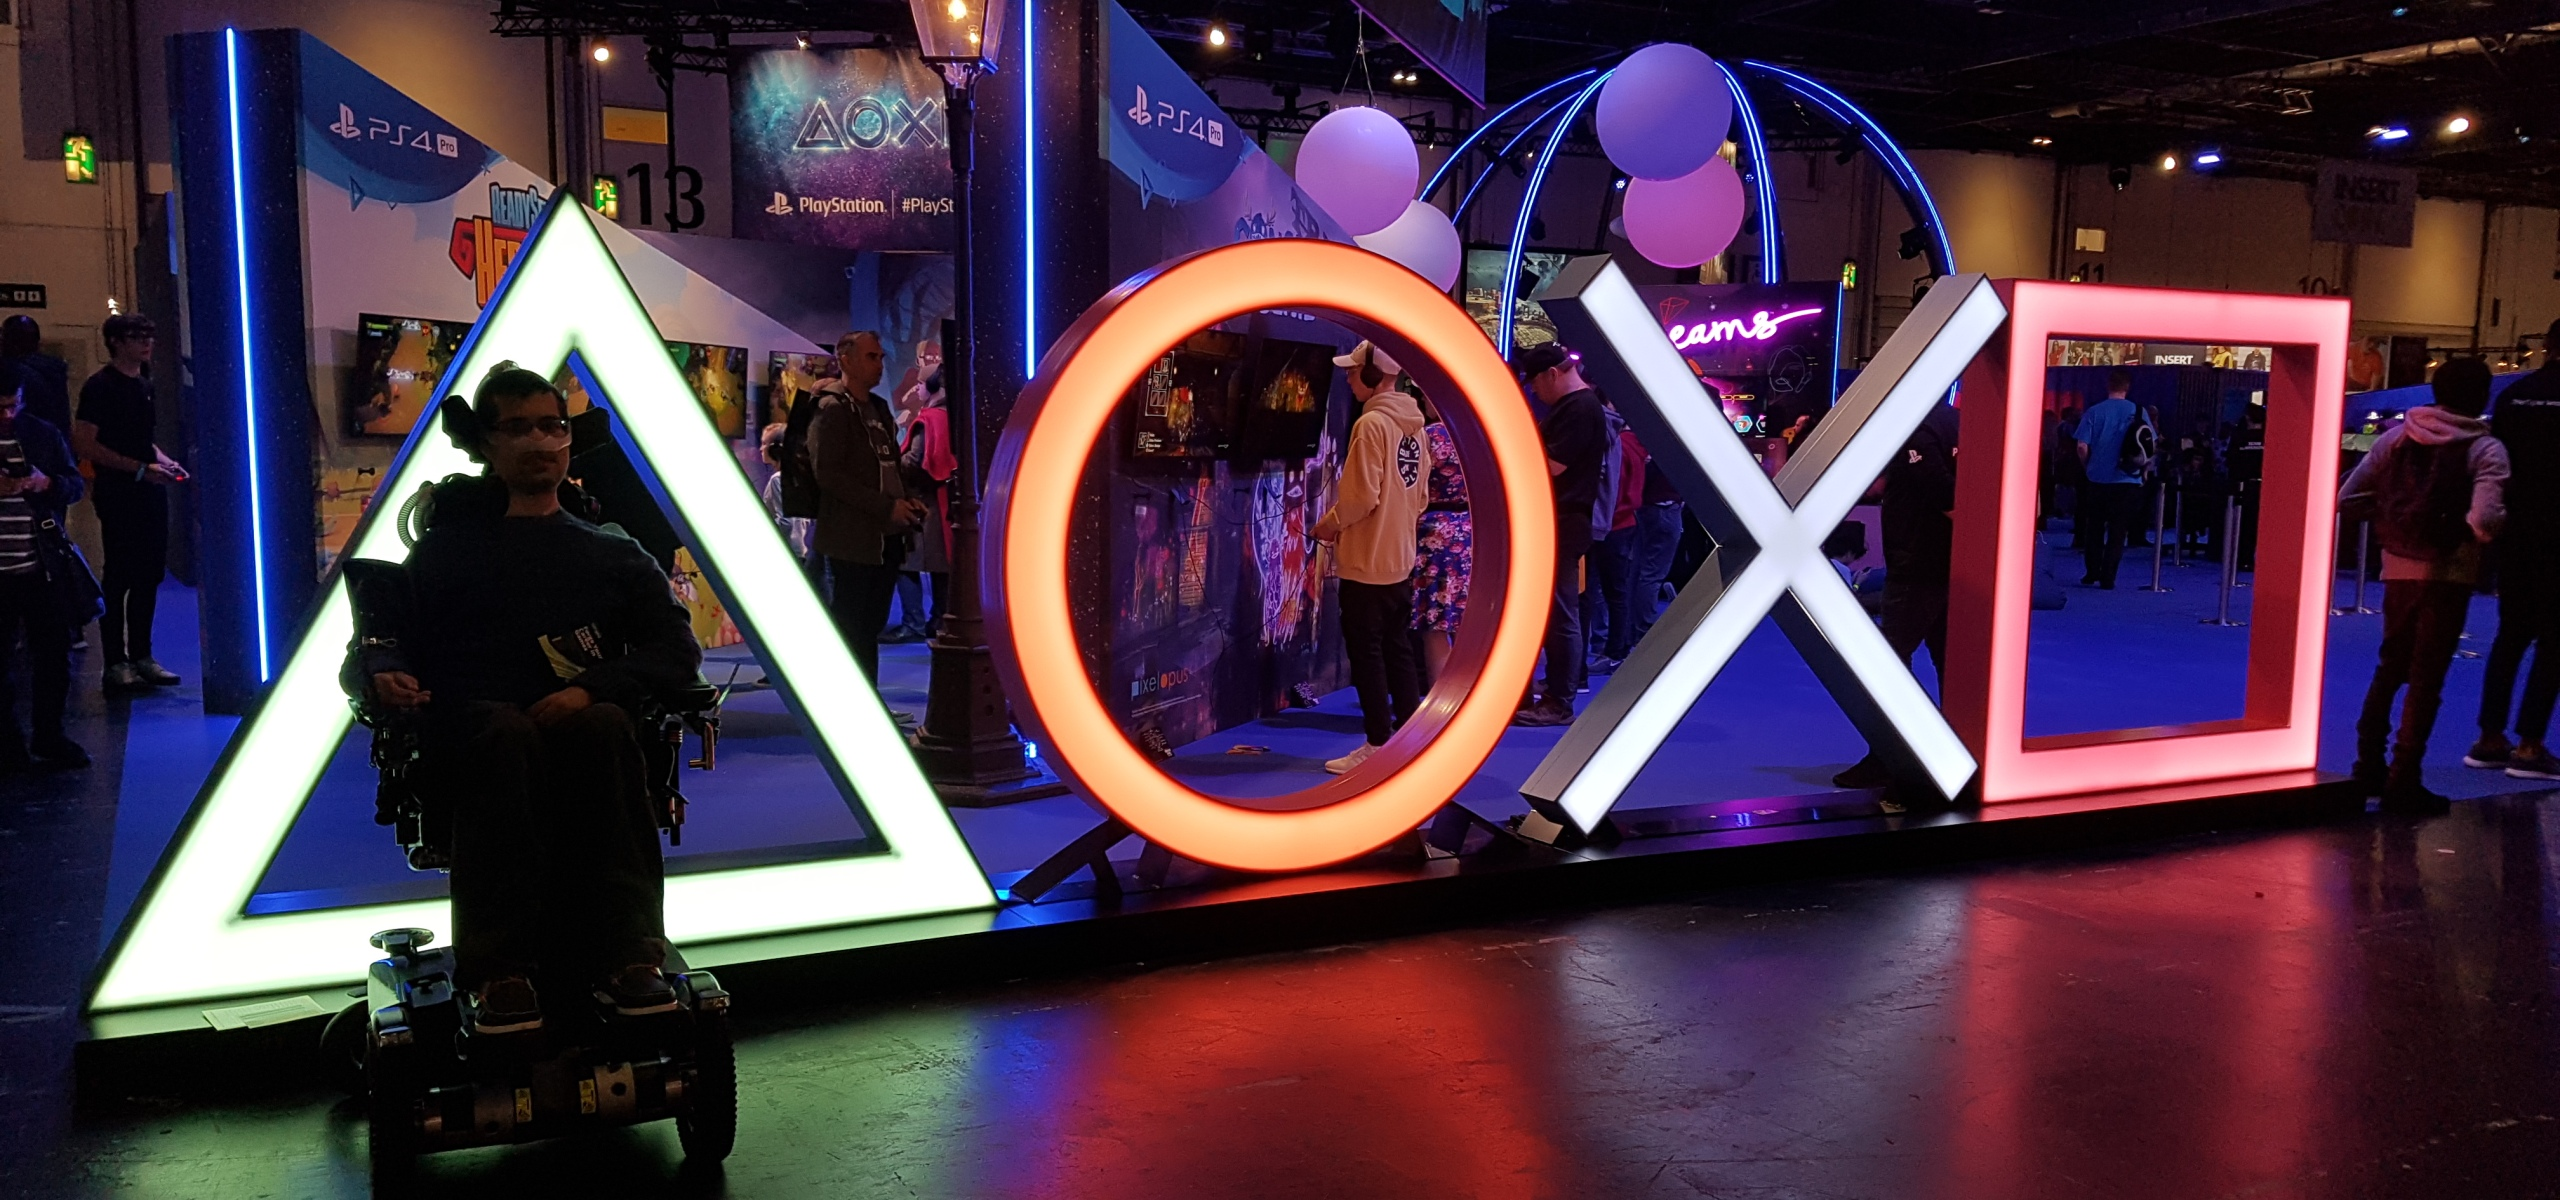 PlayStation face buttons taking at EGX 2019